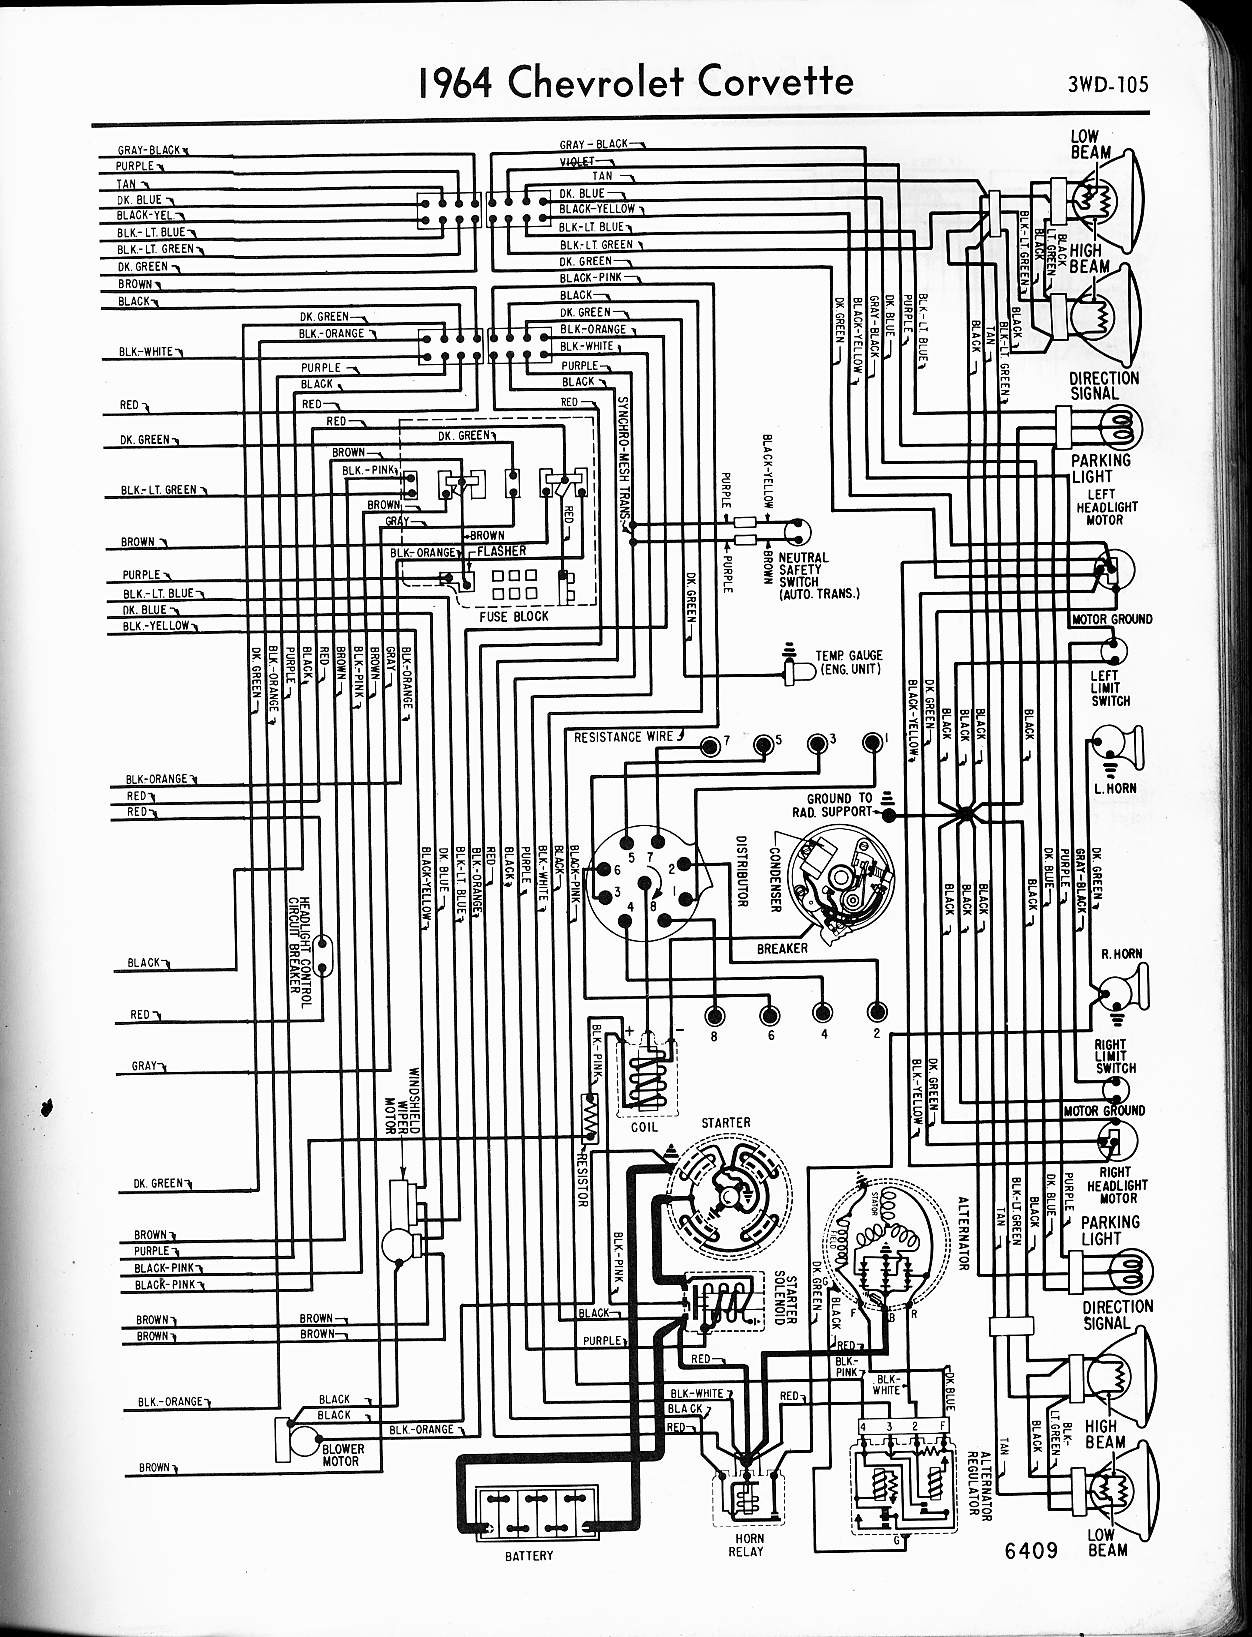 c6 engine diagram wiring diagram sortc6 wiper wiring diagram wiring diagram name c6 engine diagram [ 1252 x 1637 Pixel ]